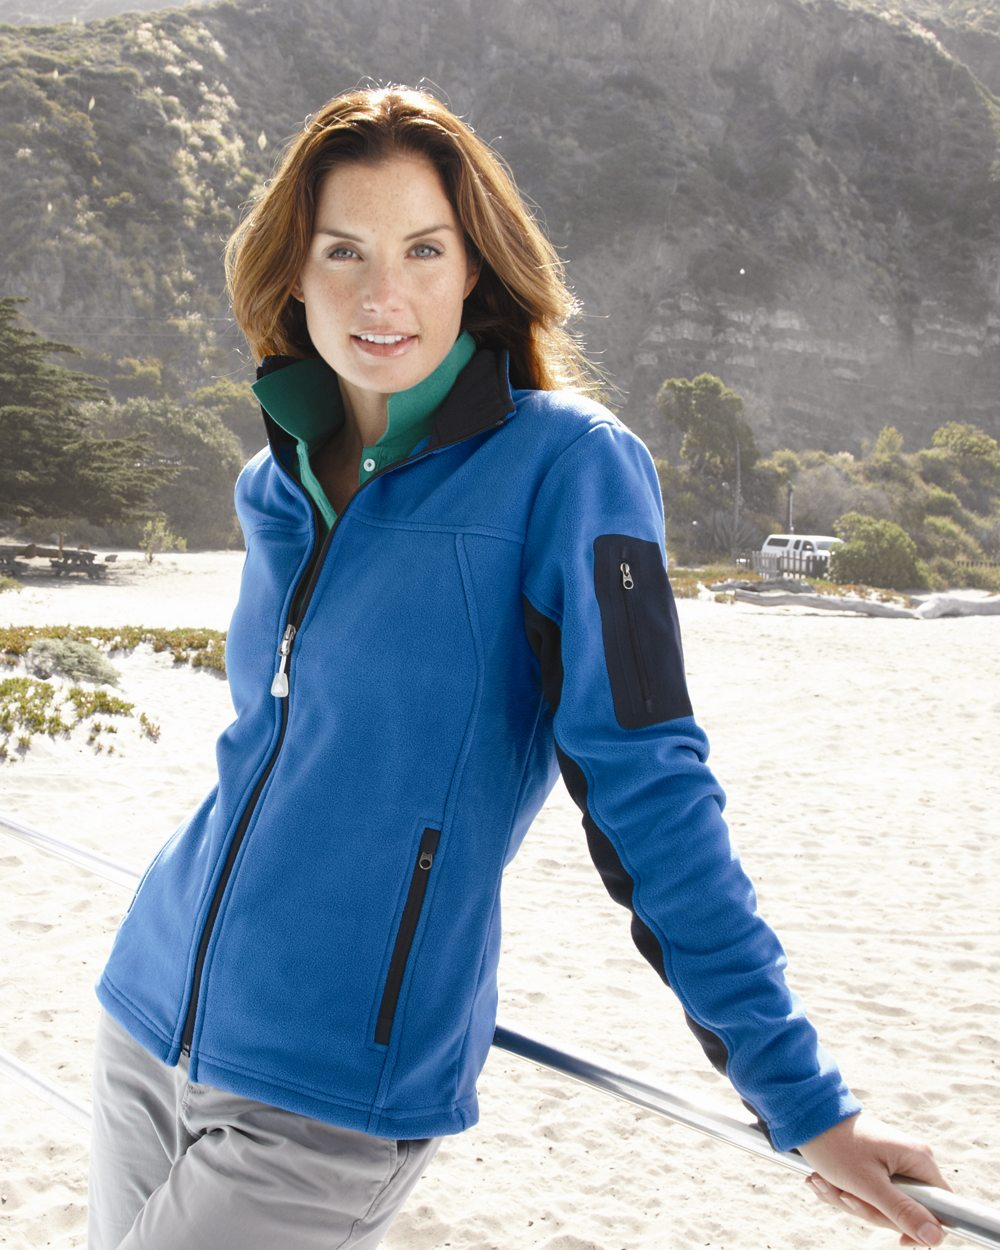 Colorado Clothing 5297 - Ladies' Colorblocked Full-Zip Microfleece Jacket